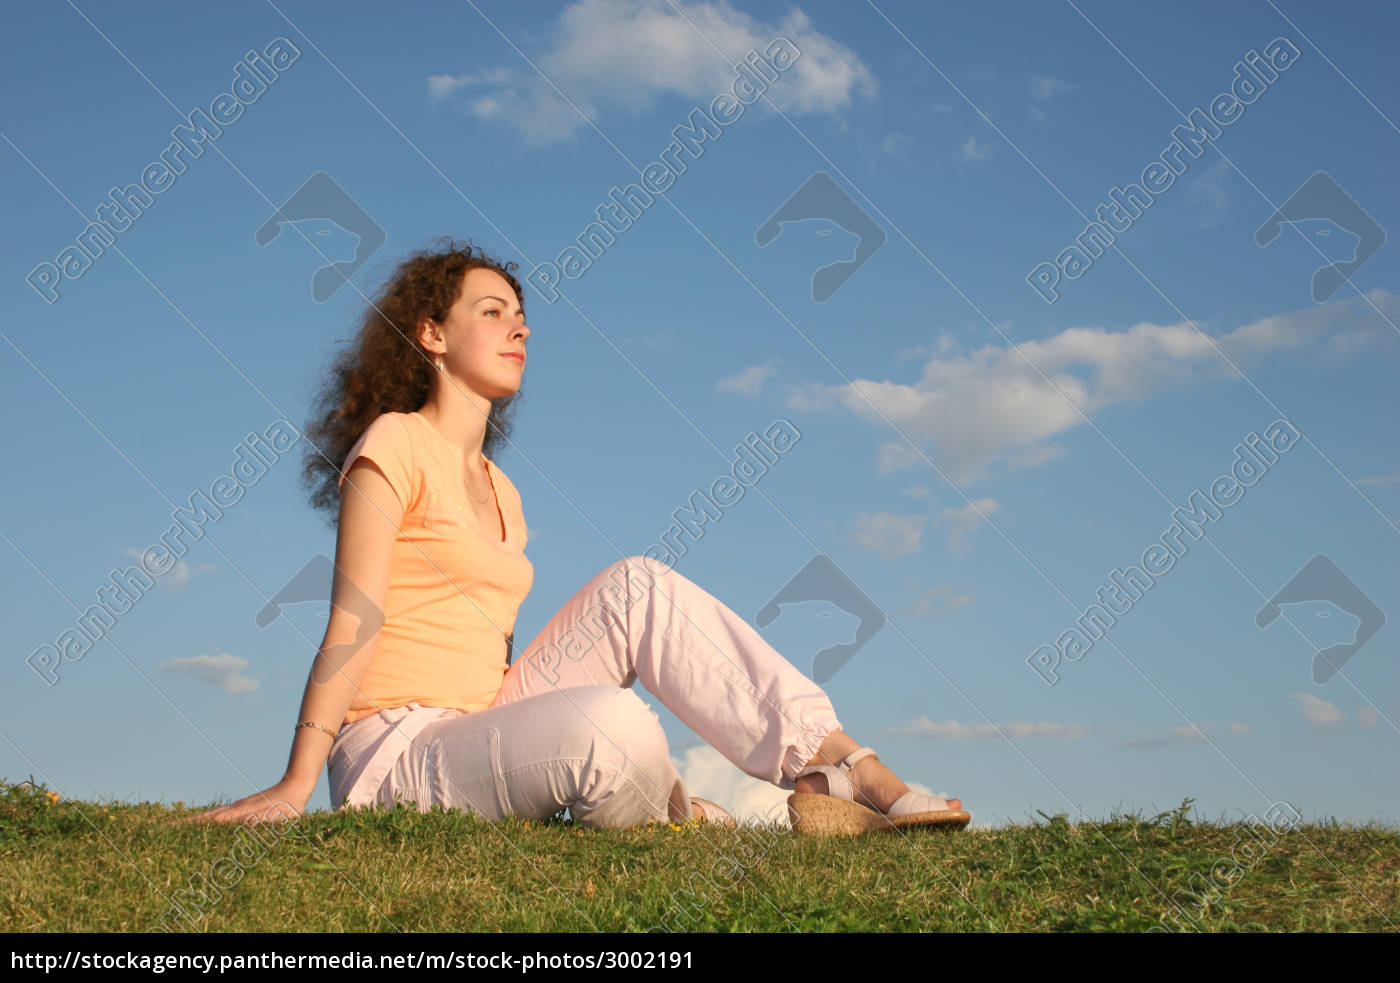 woman, on, grass - 3002191